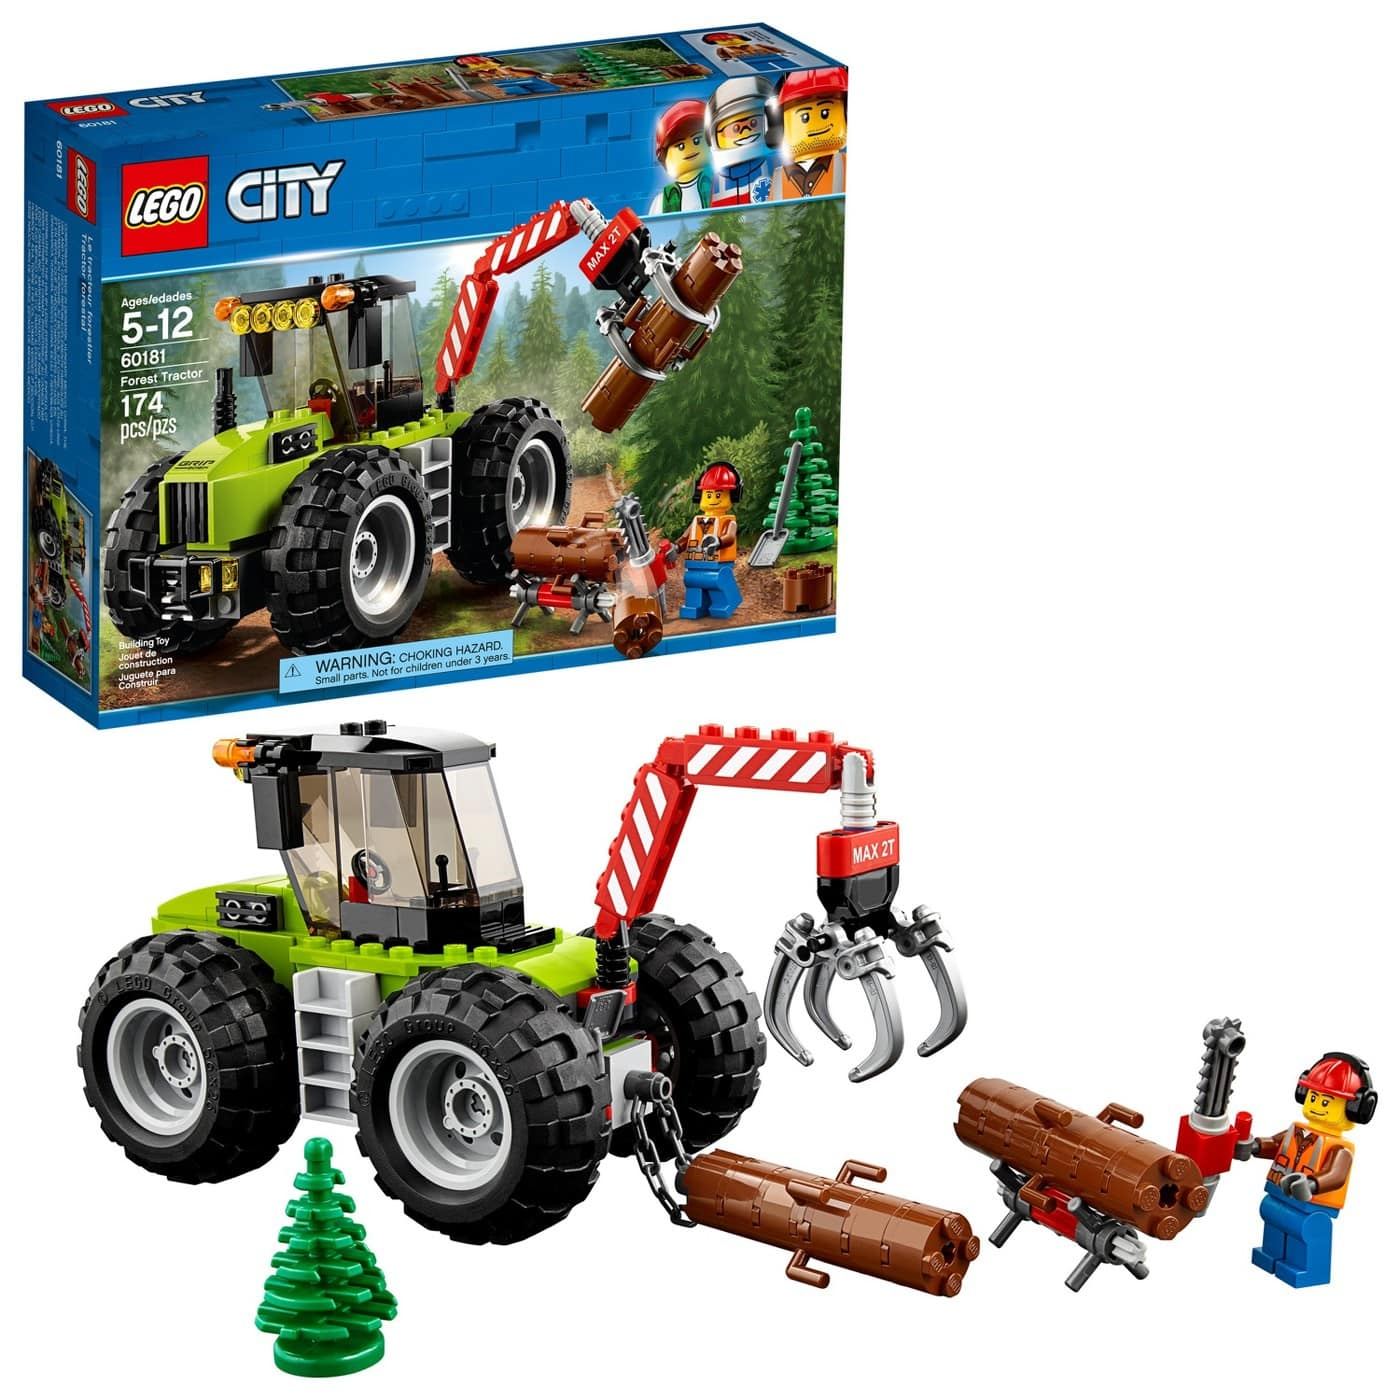 LEGO City Forest Tractor 60181, Ambulance Helicopter 60179 $15.19 w/Red Card @Target